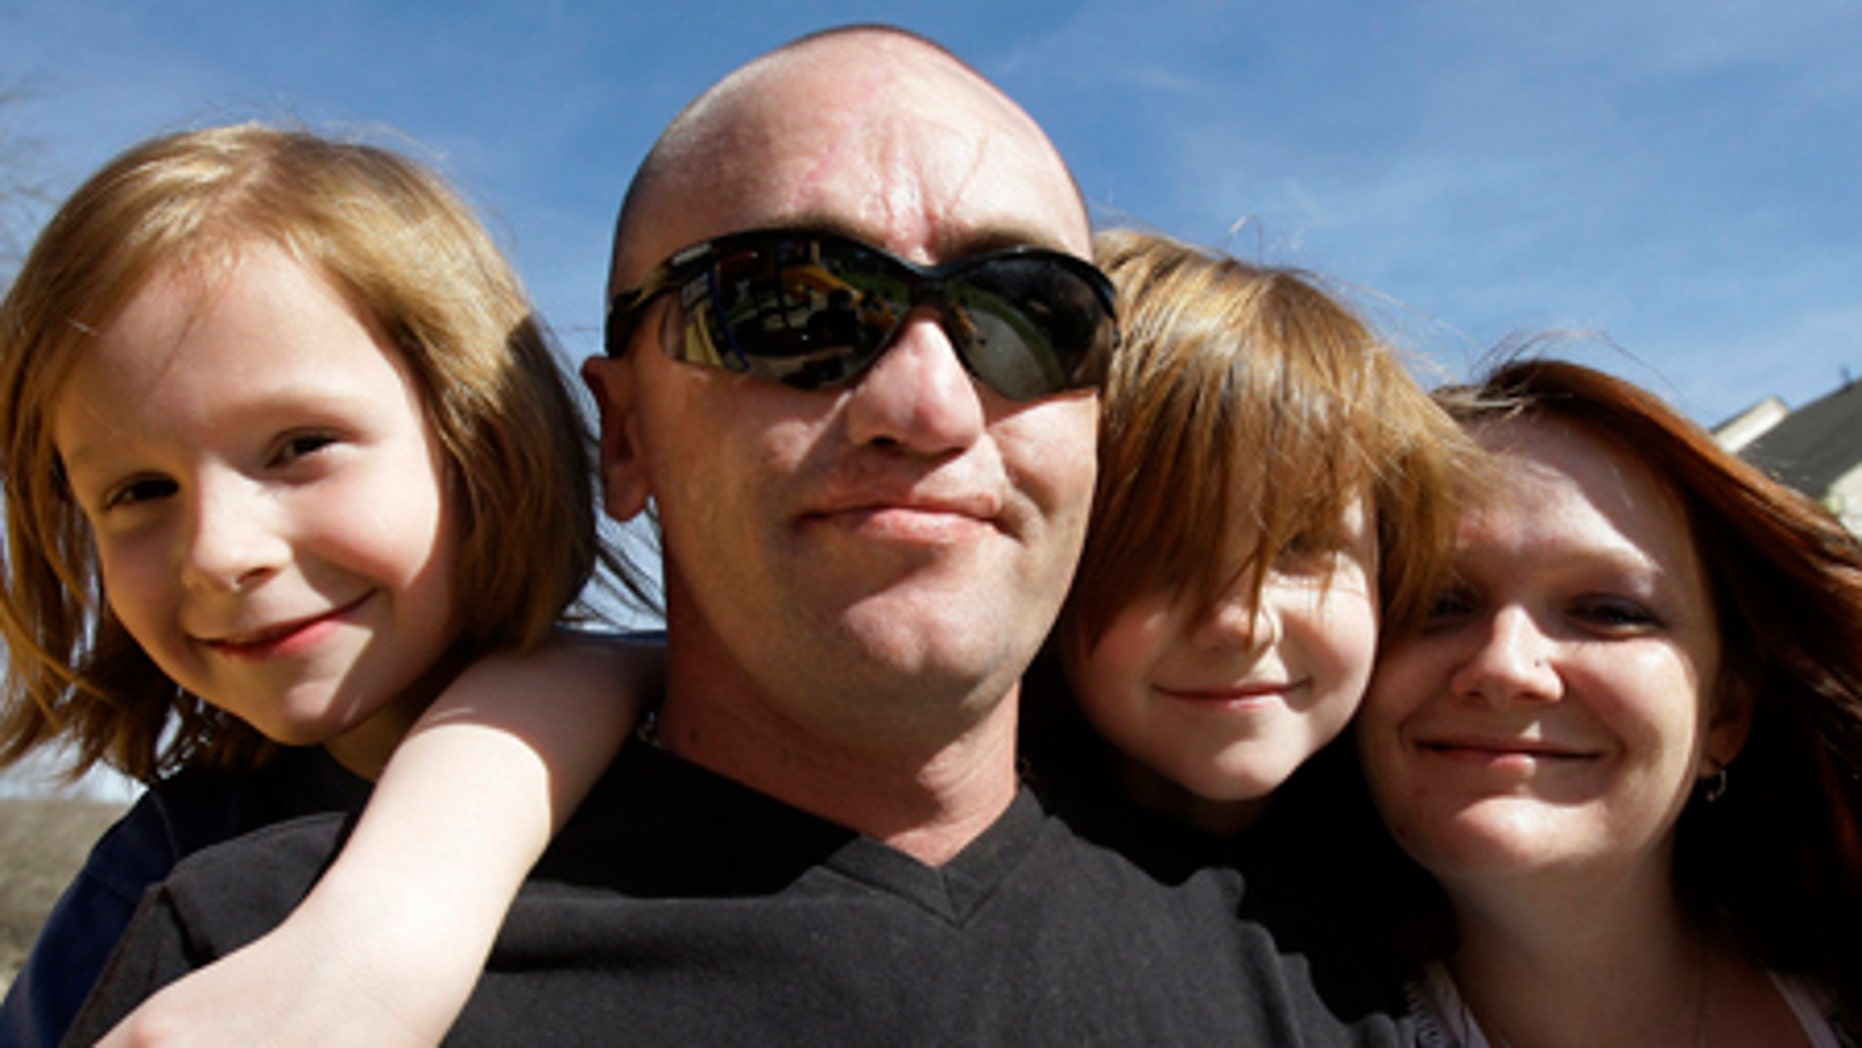 March 2, 2009: Sgt. Darron Mikeworth spends time at home with his family in San Antonio. From left are his son Ryan, 7, son Connor, 6, and wife, Dea